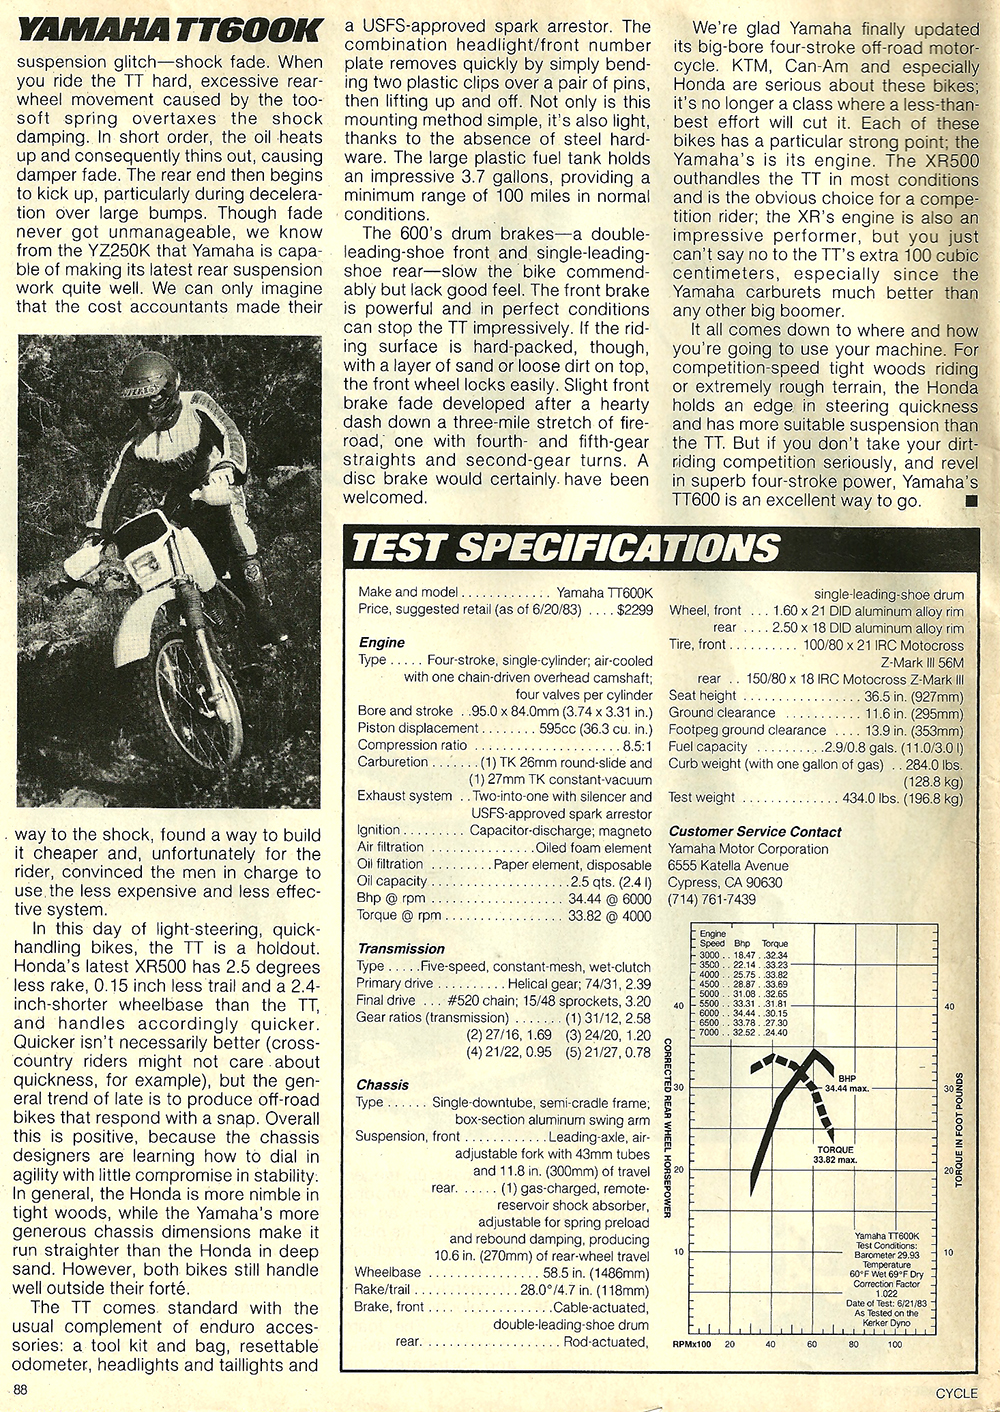 1983 Yamaha TT600K off road test 7.jpg